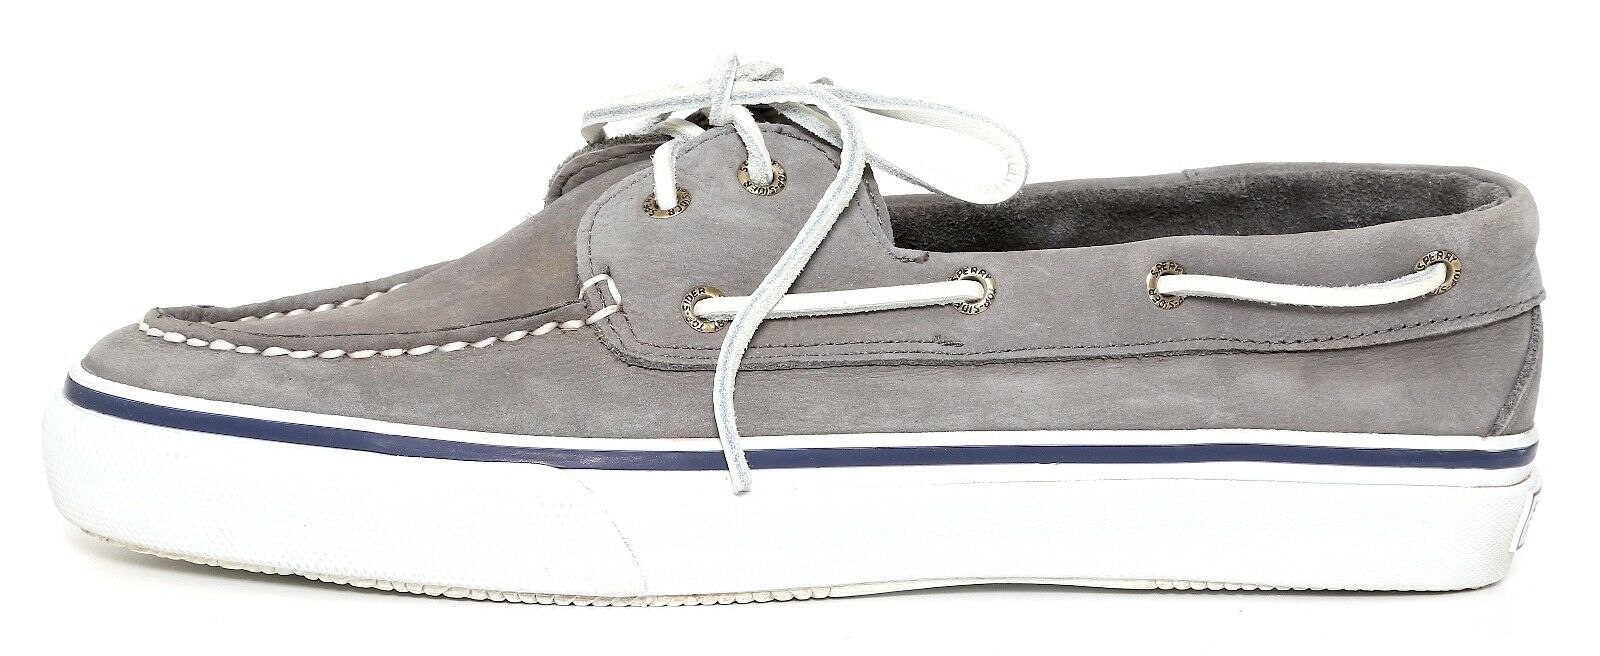 Sperry Top Sider Slip On Shoes Grey Uomo Sz 11.5 M 1218